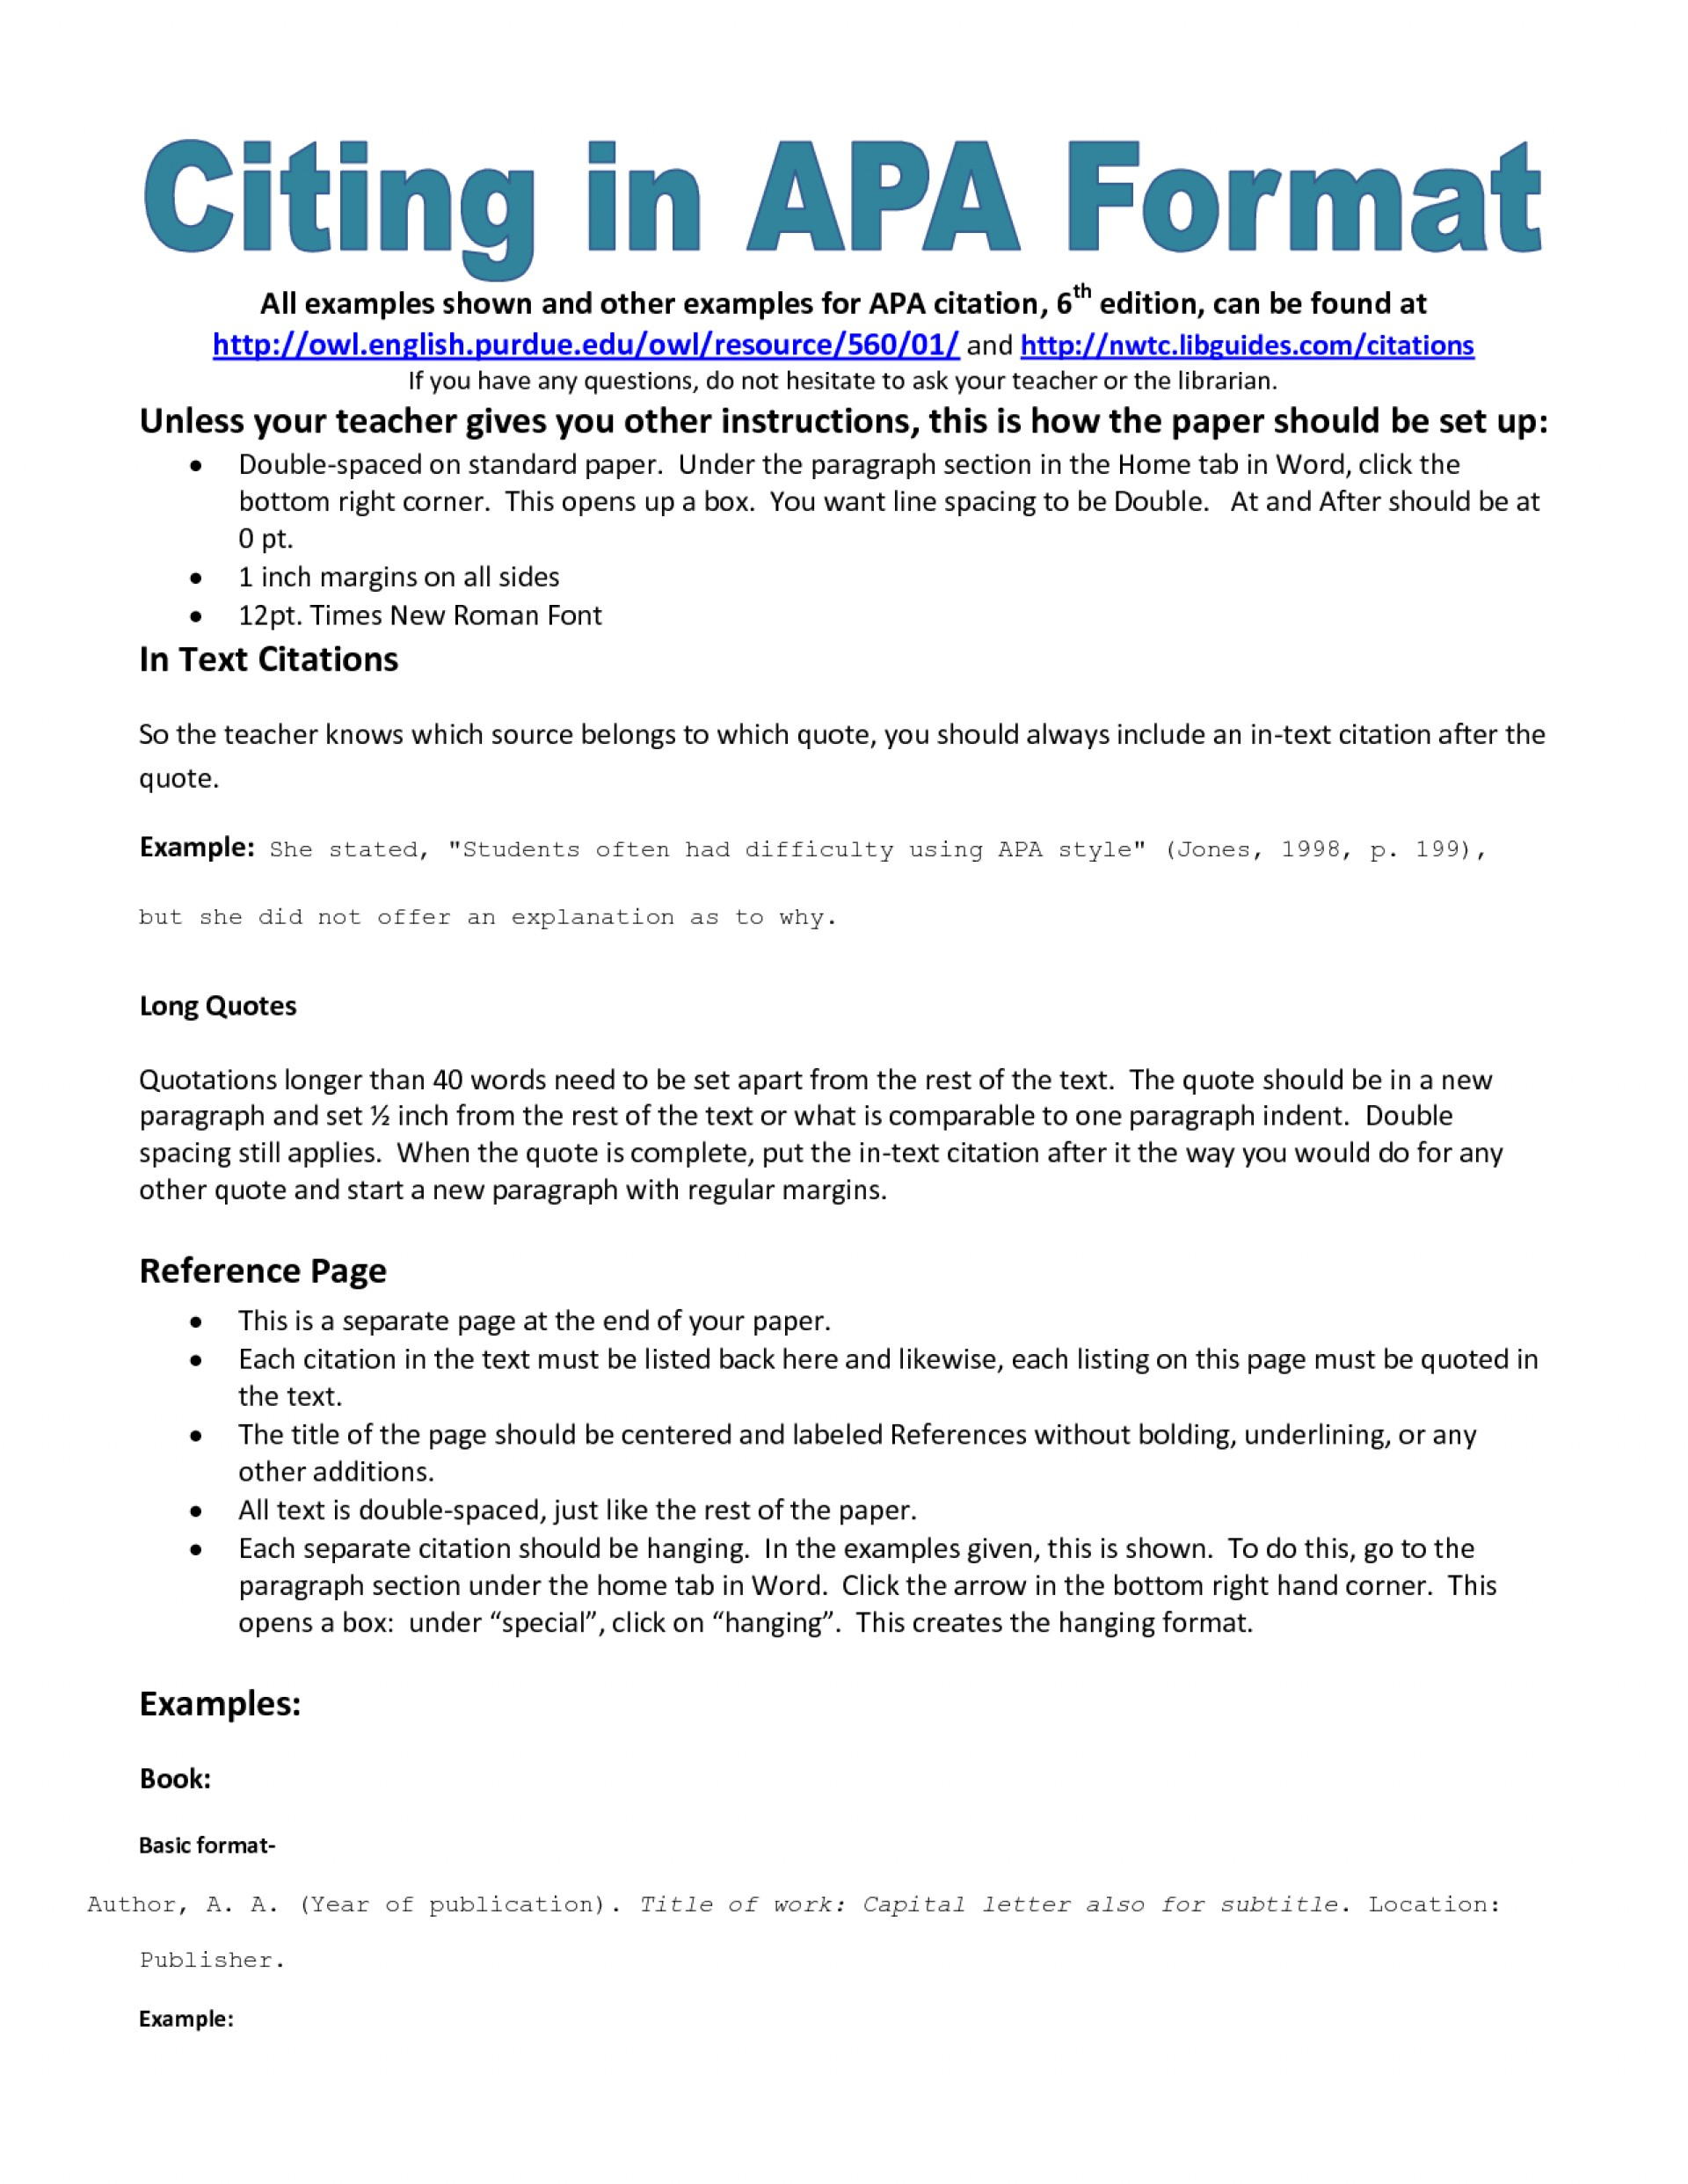 006 Essay Example In Apa Format Shocking Paper Written 1920